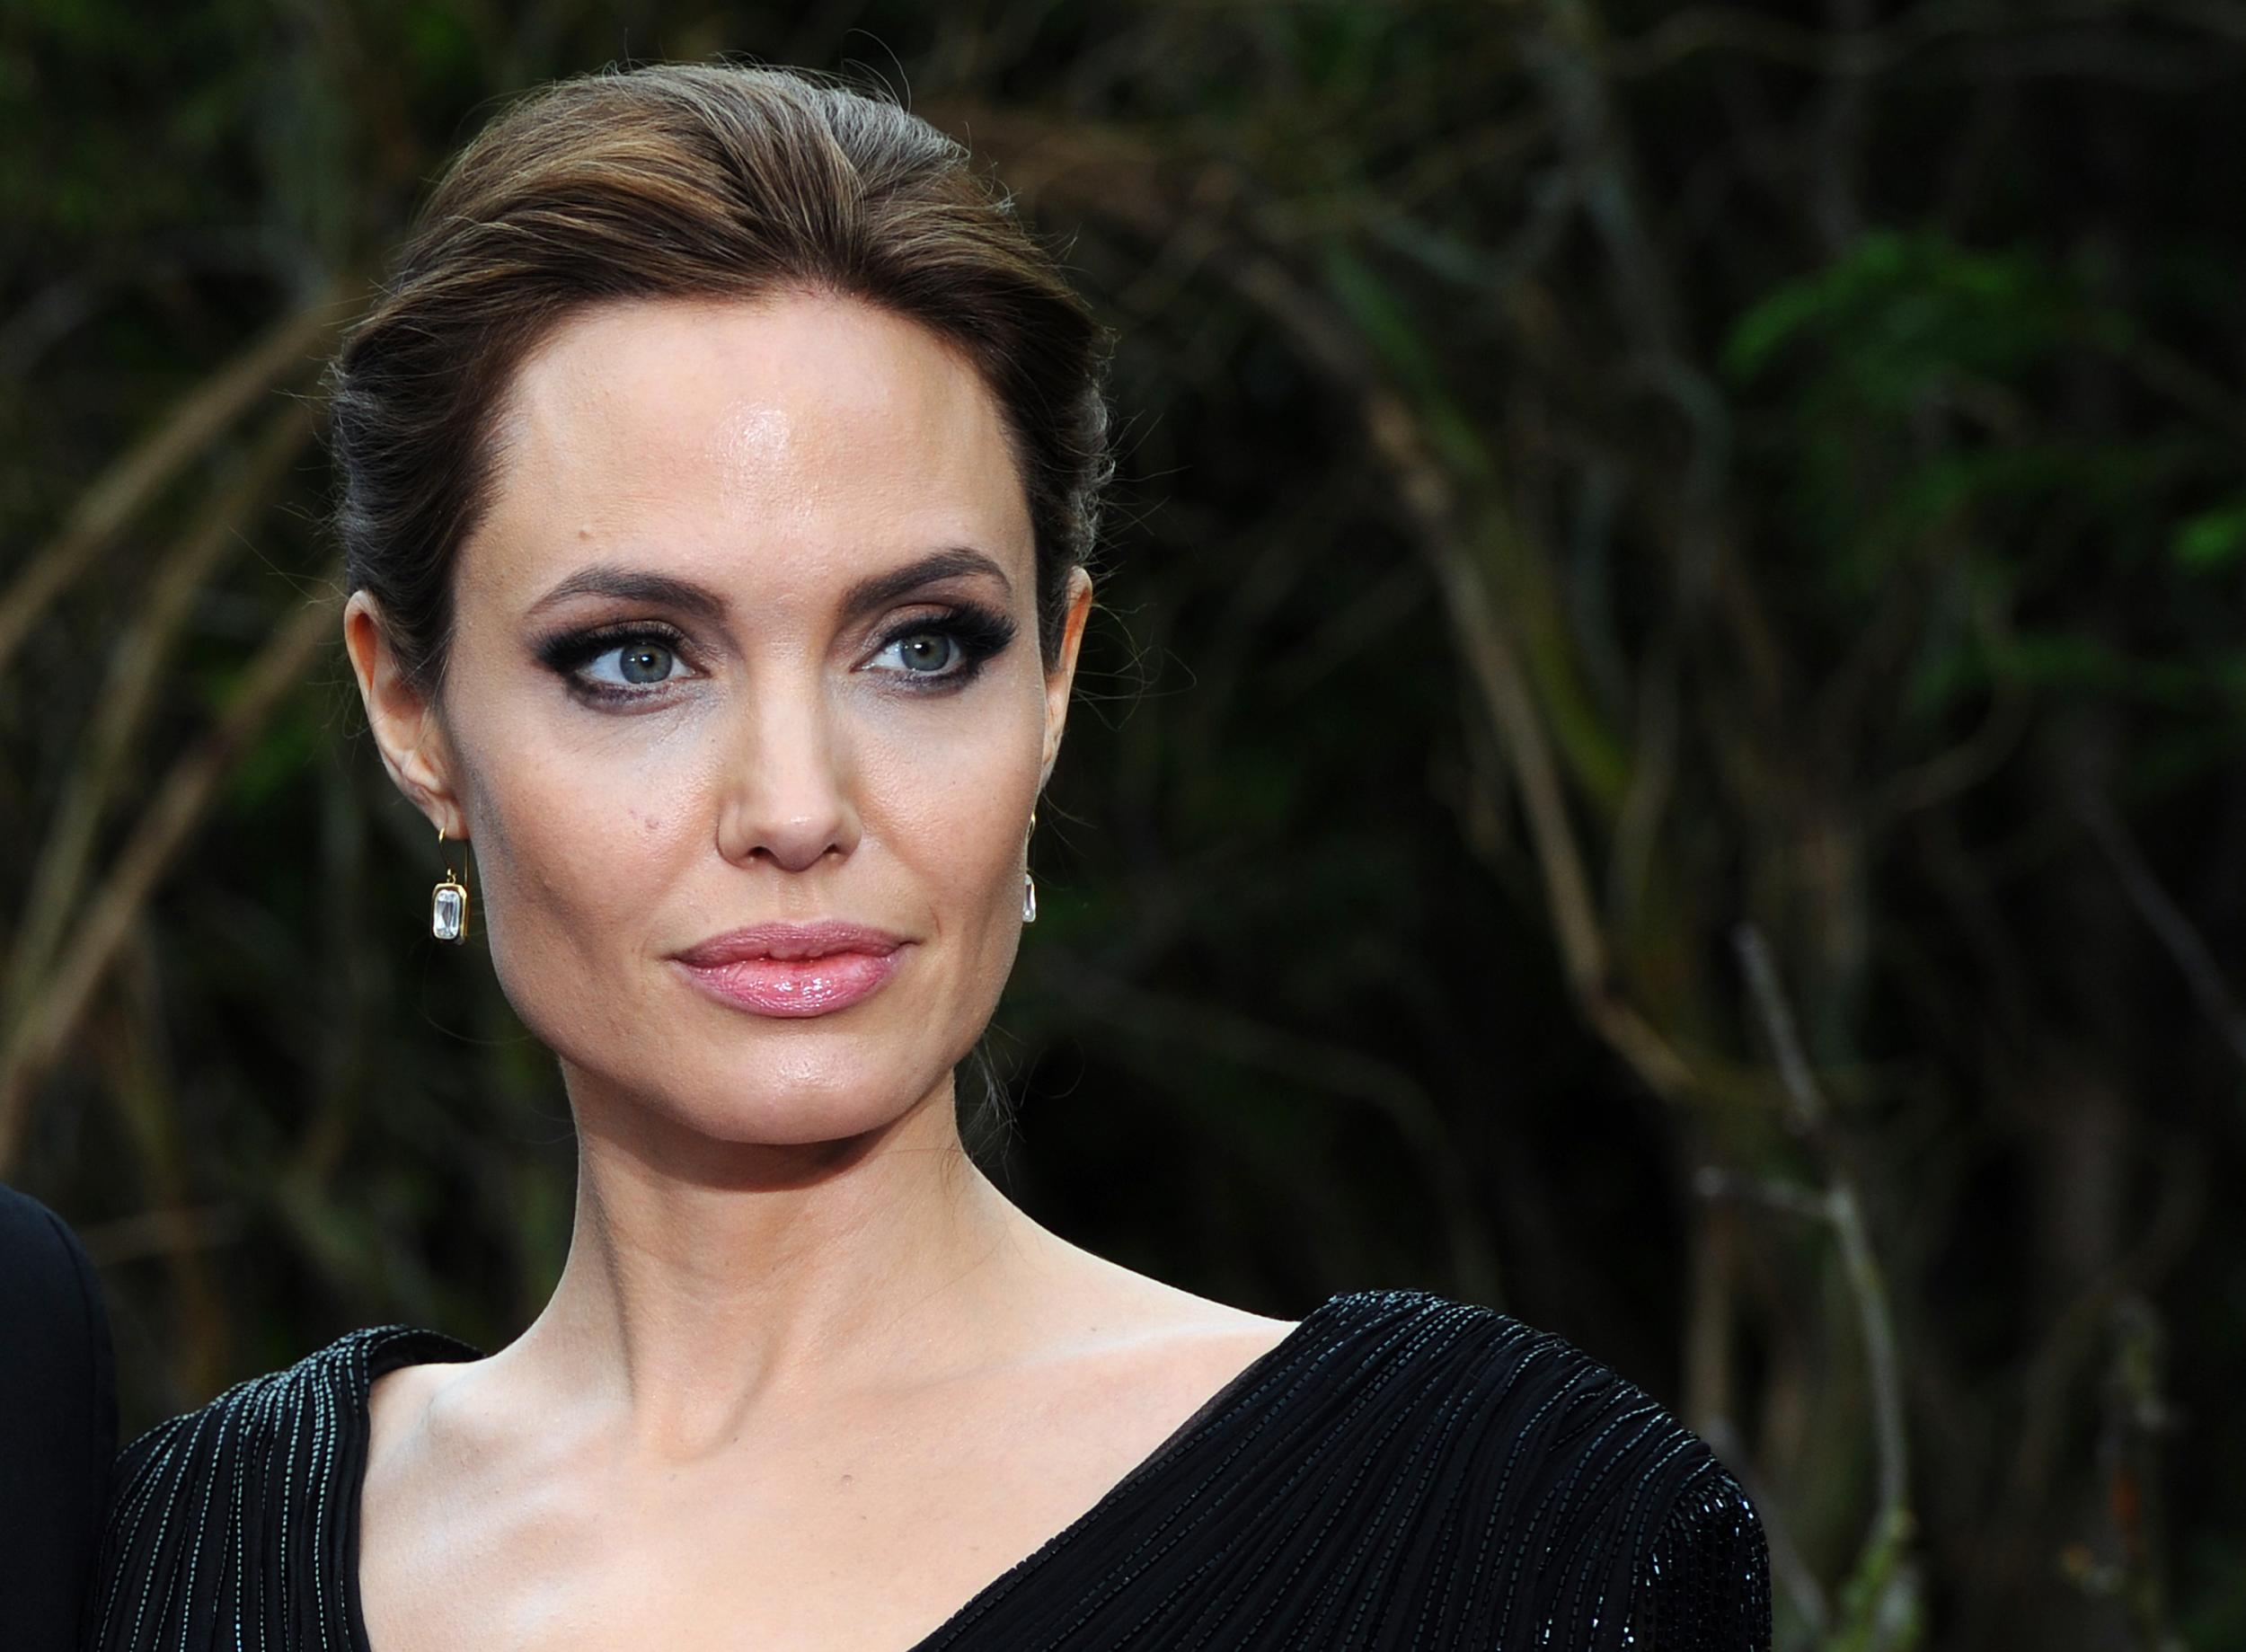 Angelina Jolie Opens Up About difficult Year After Split